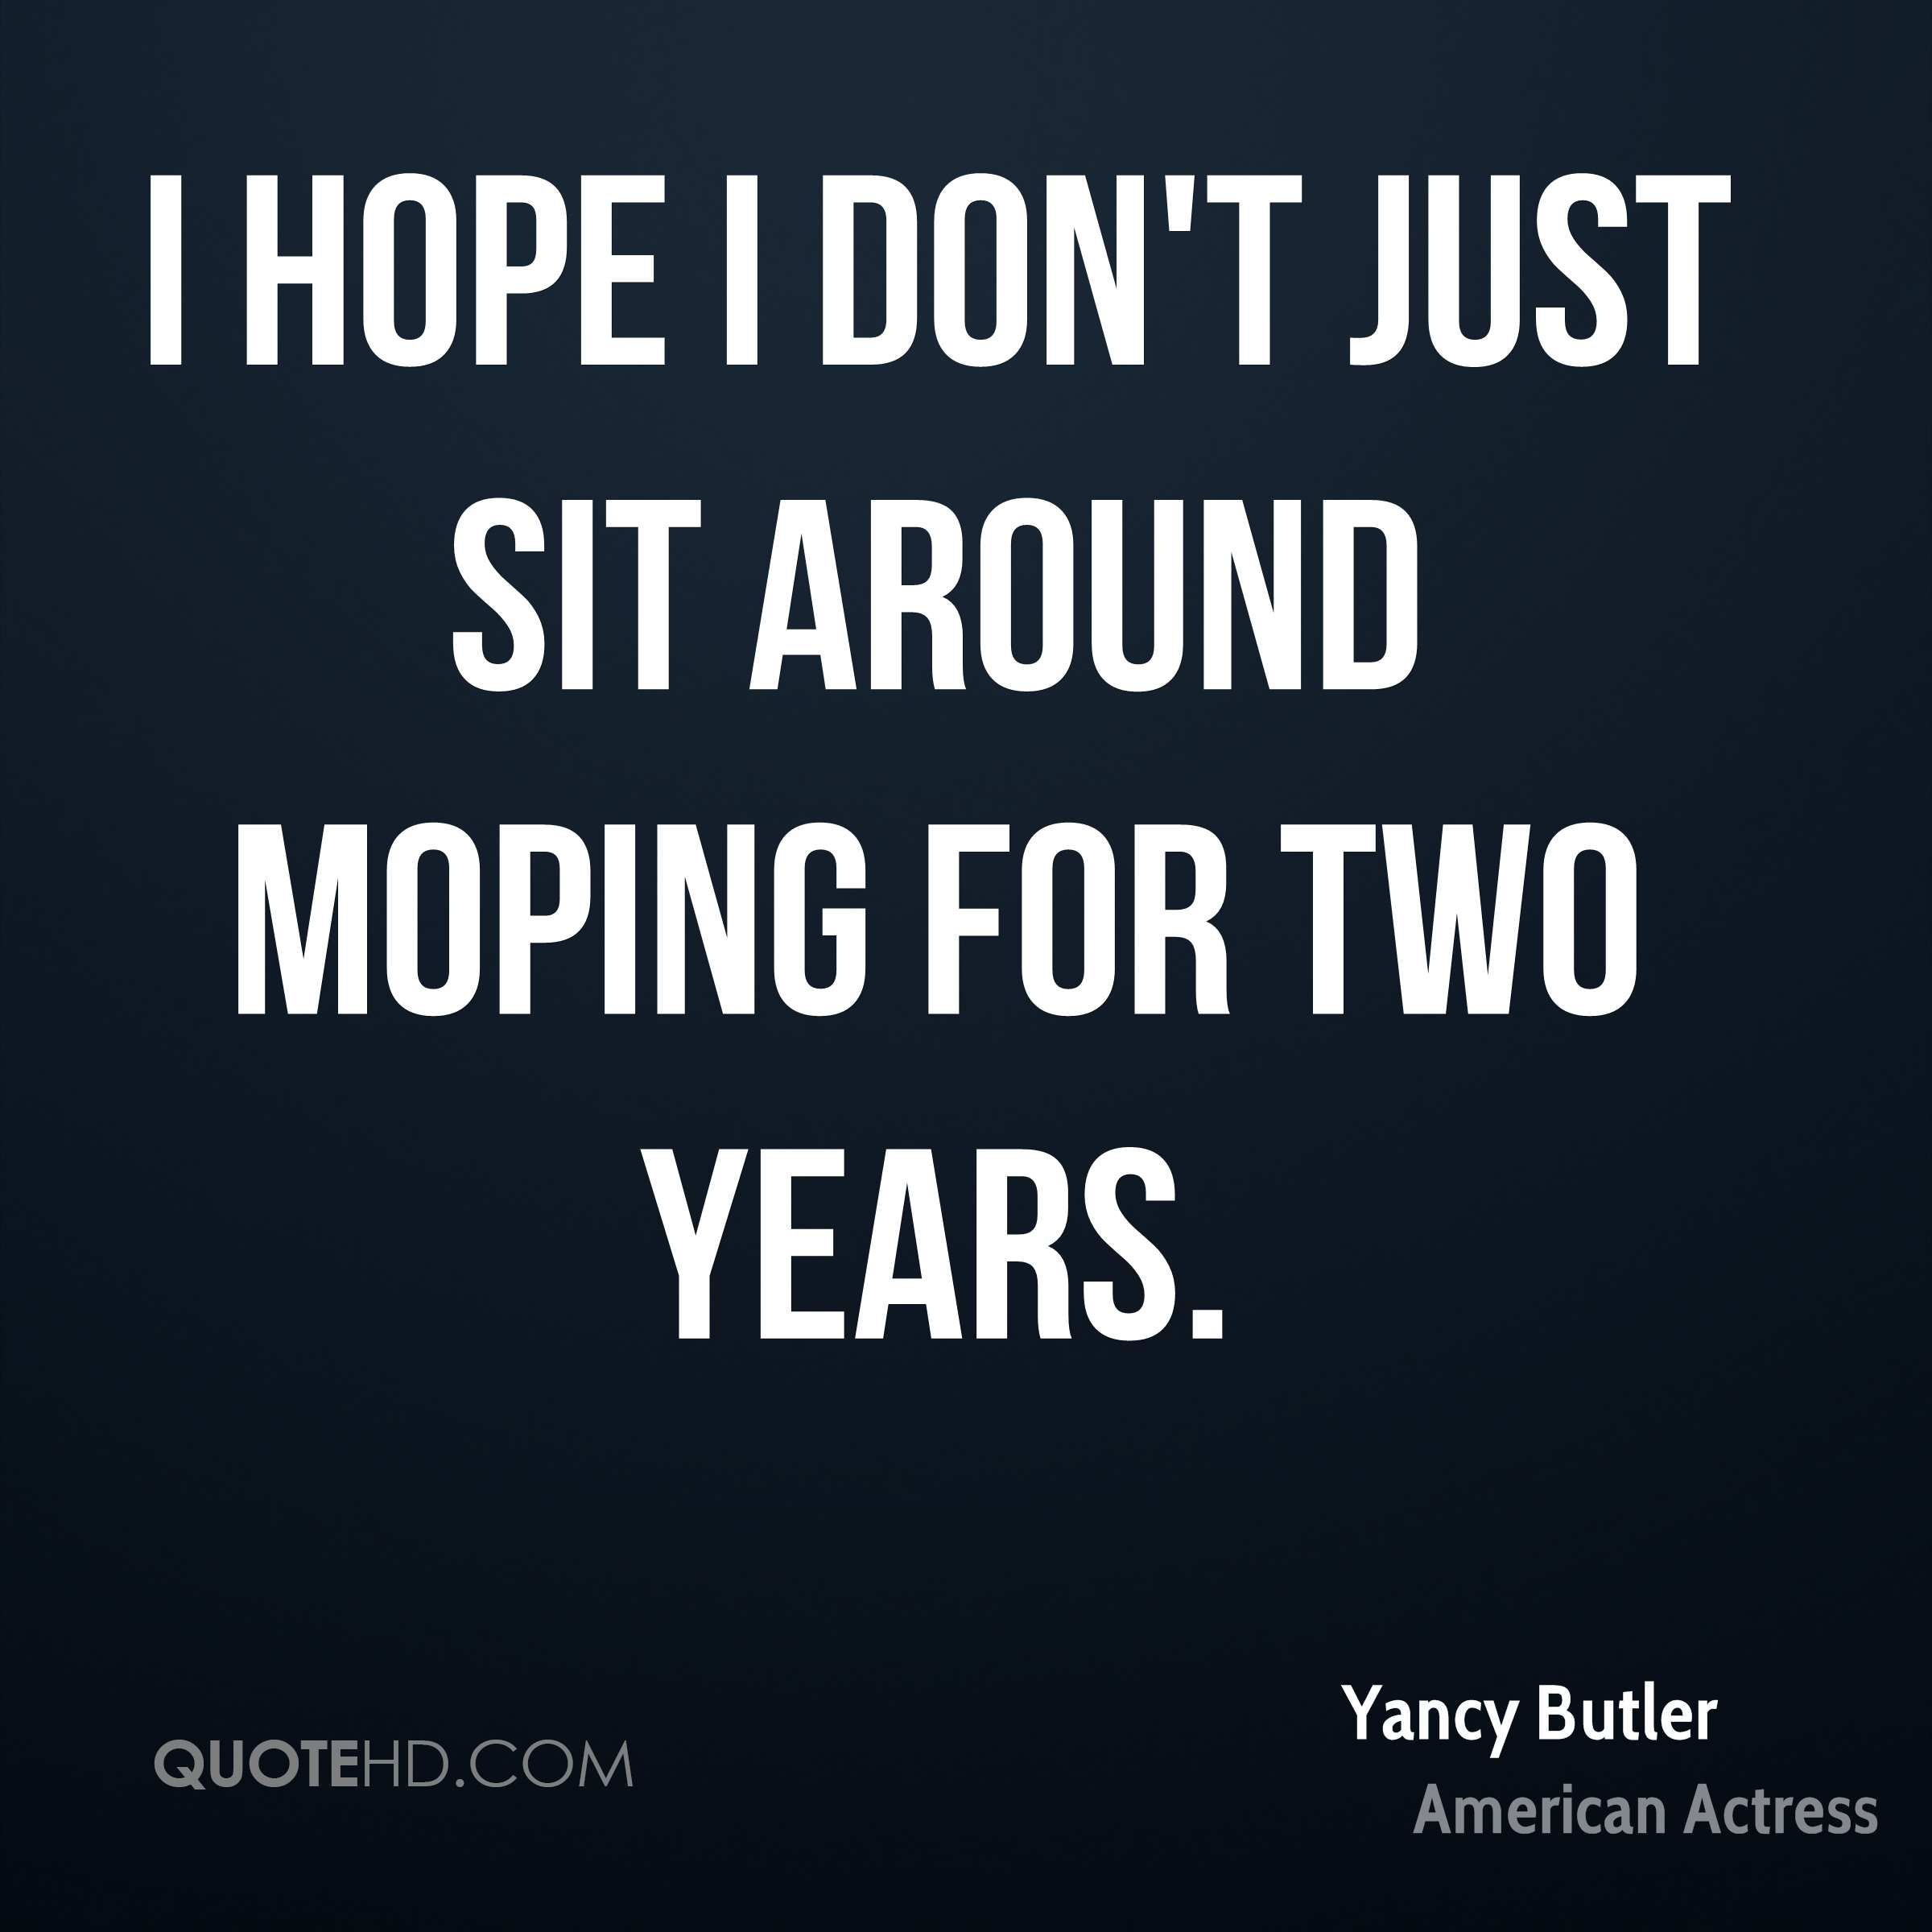 I hope I don't just sit around moping for two years.